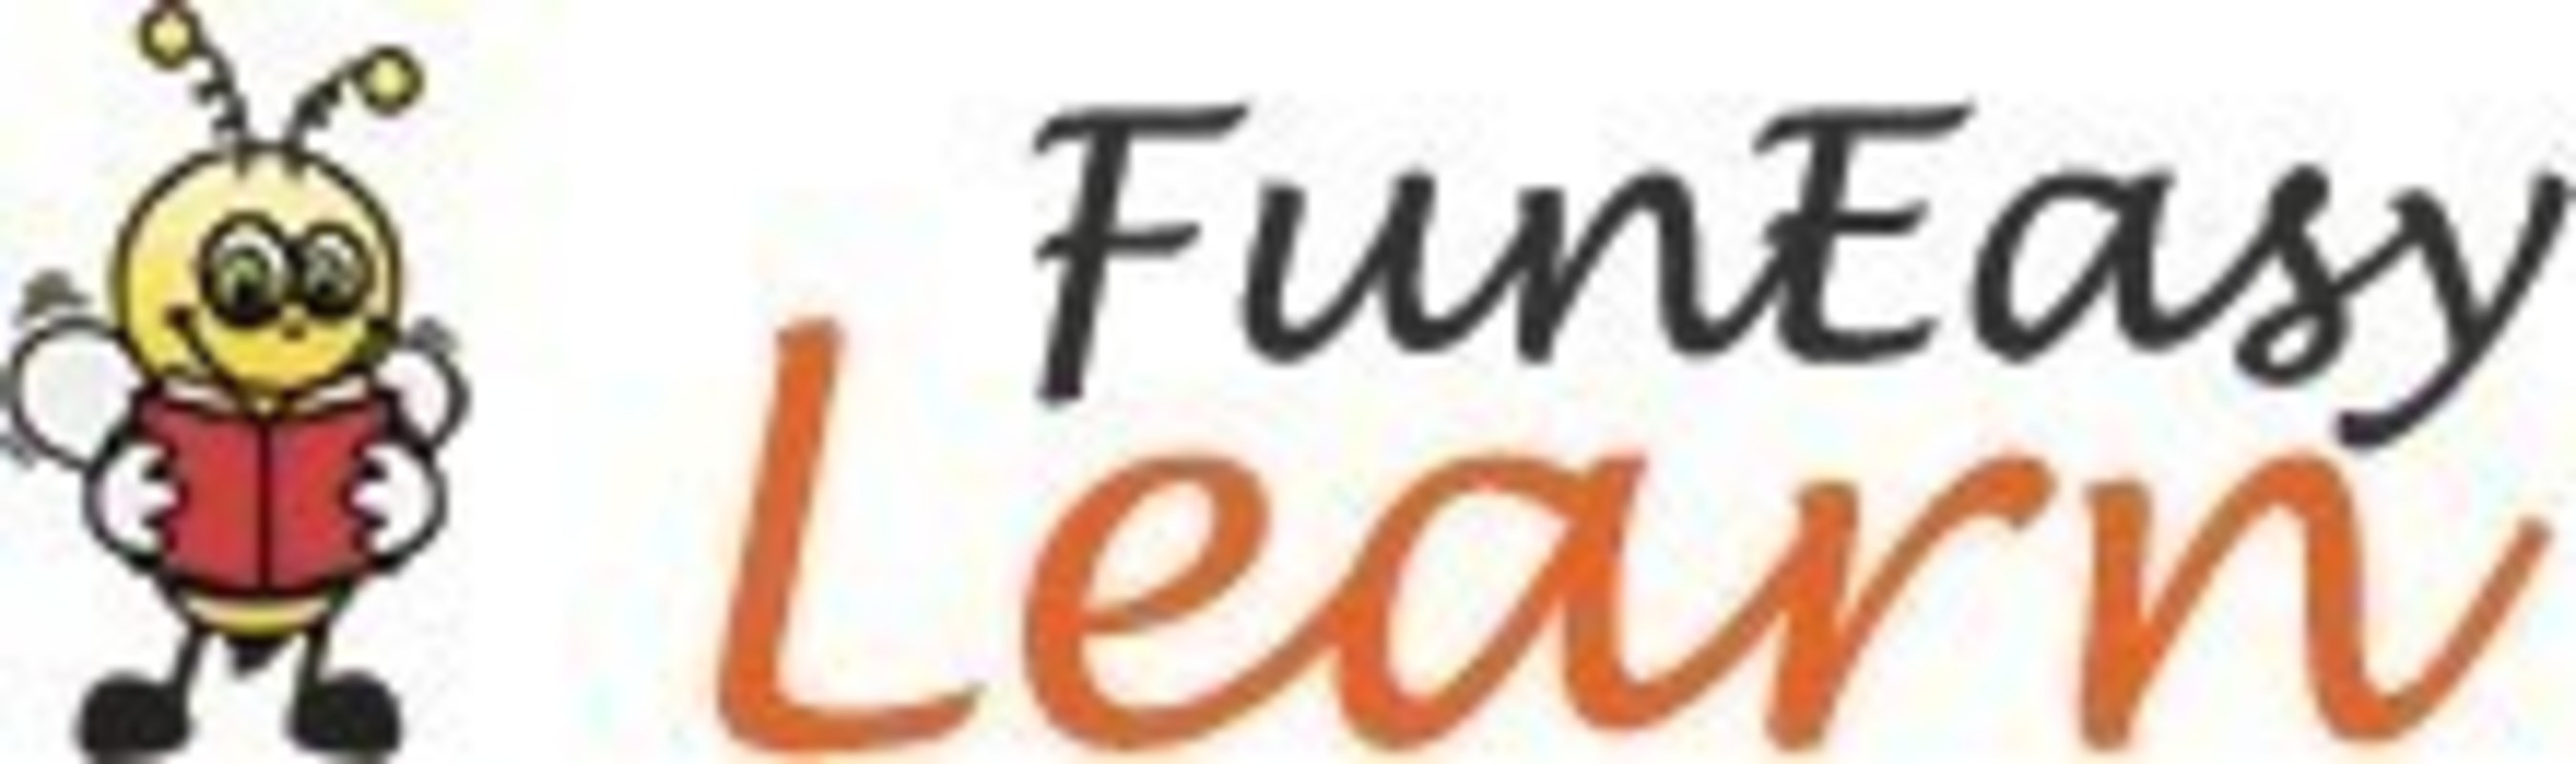 FunEasyLearn Announces the Launch of the New Material Design of Android app: Learn German 6000